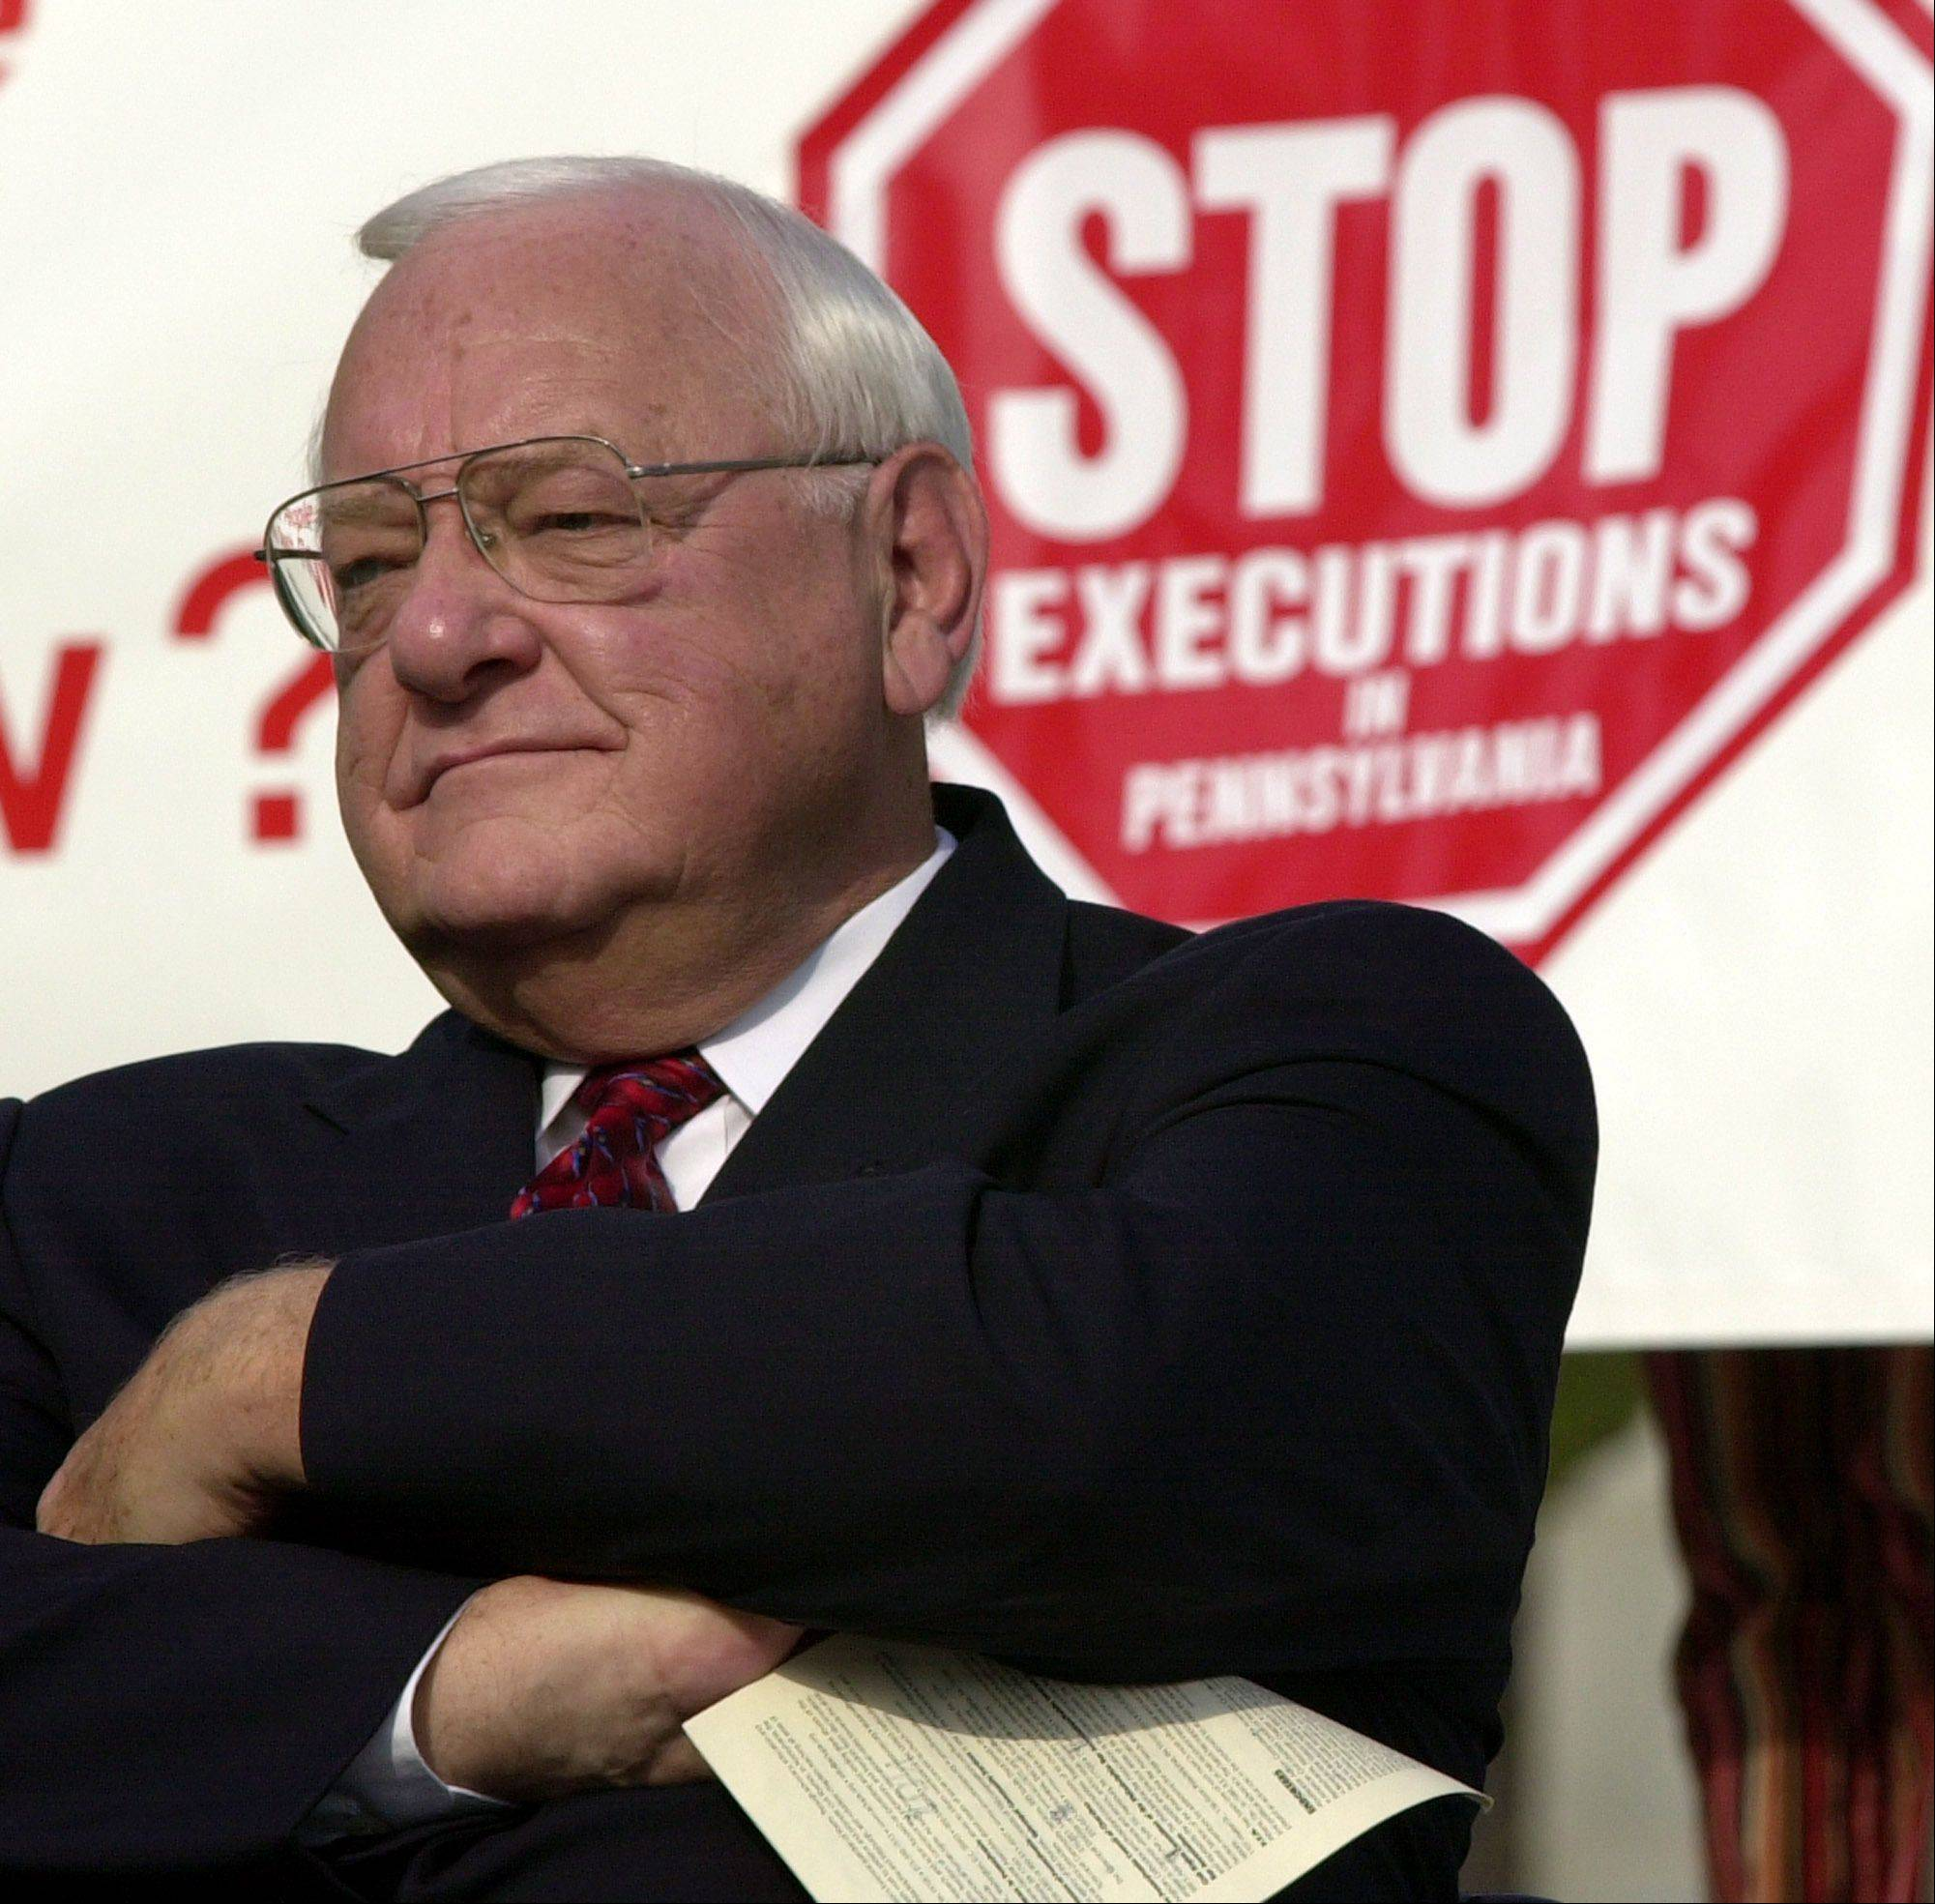 Former Illinois Gov. George Ryan called for a moratorium on executions in Pennsylvania at a rally on Oct. 11, 2003.